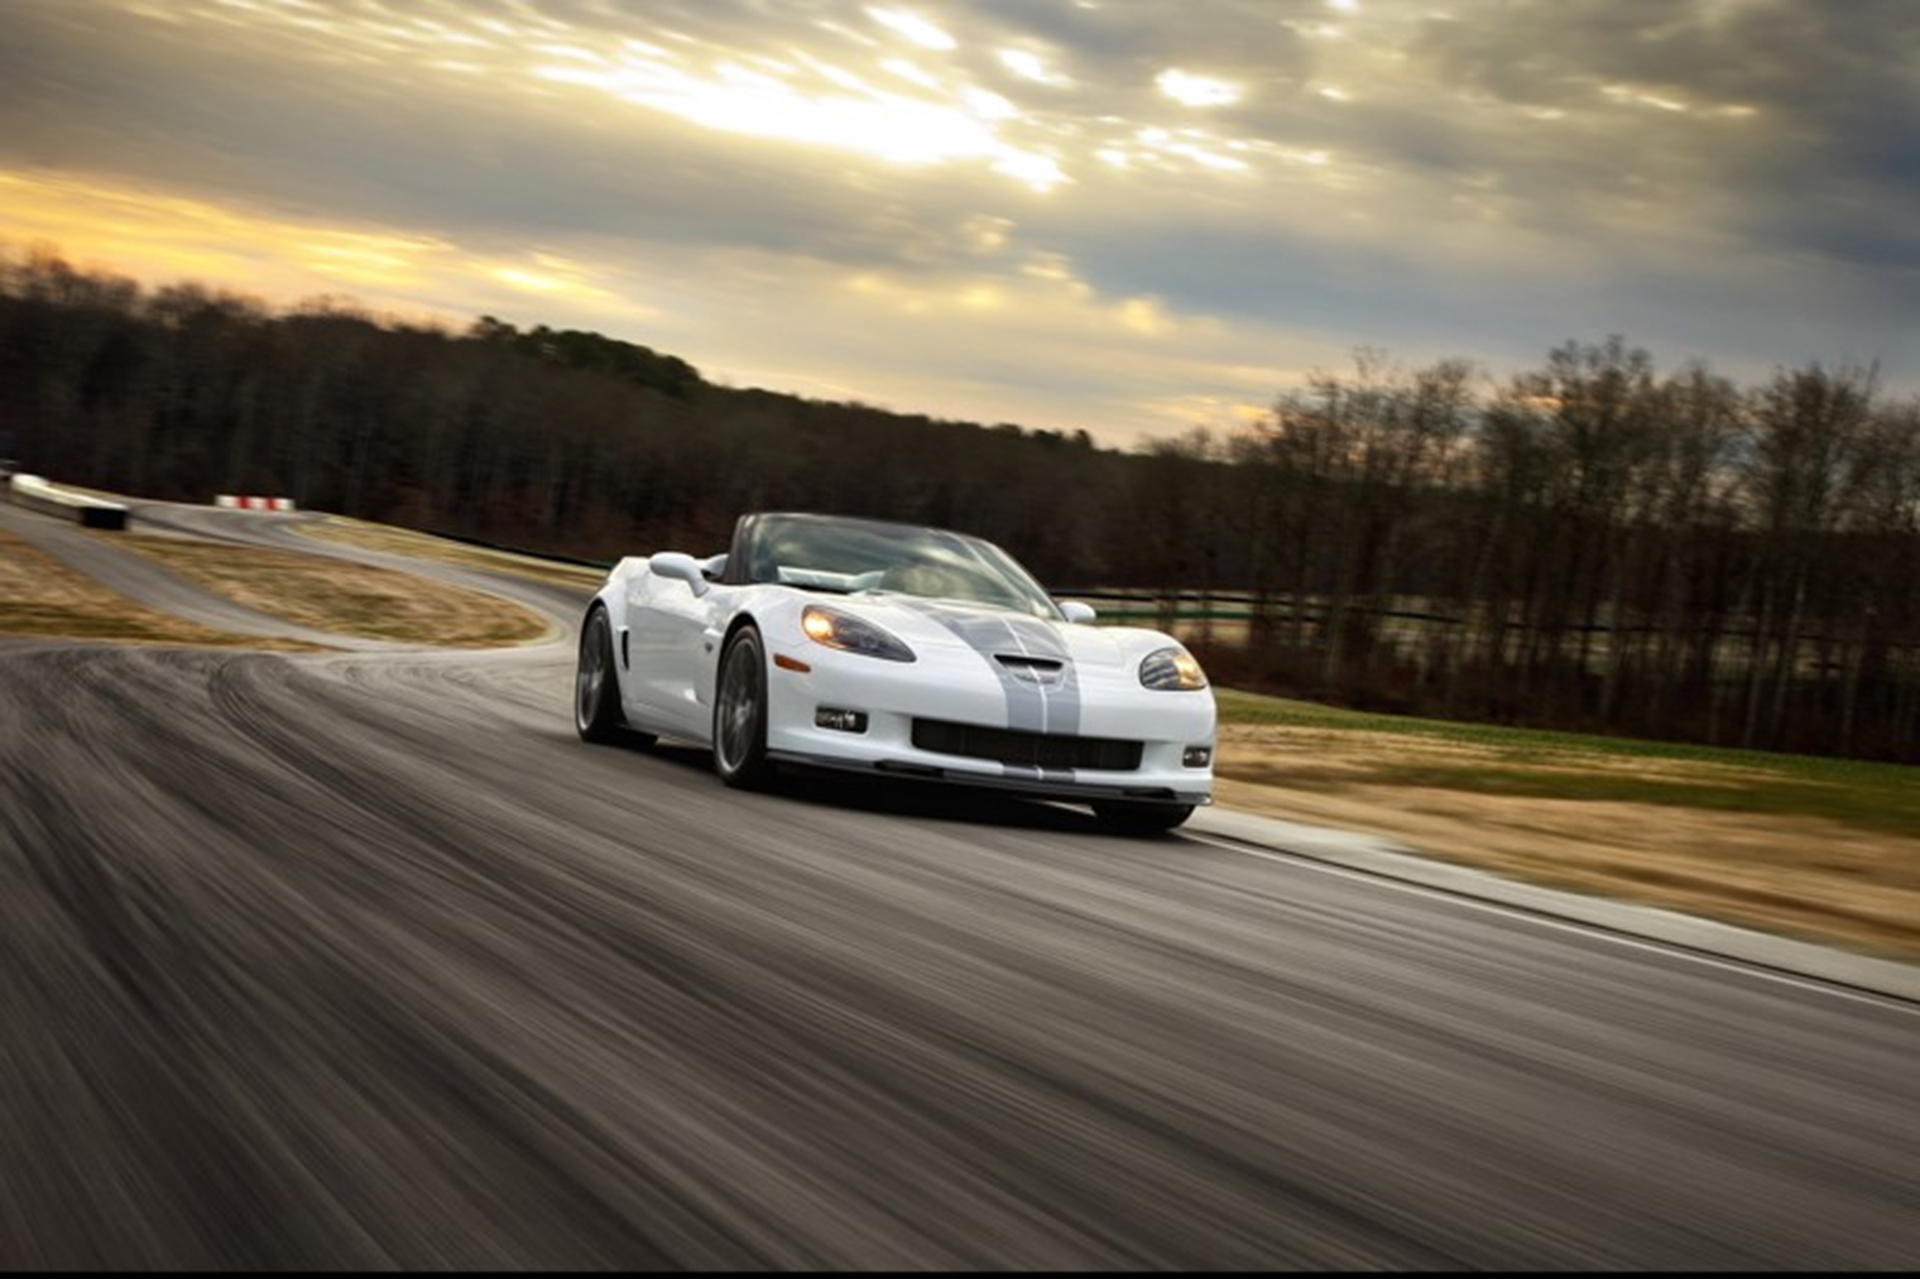 Chevrolet_Corvette_427_Convertible_driving